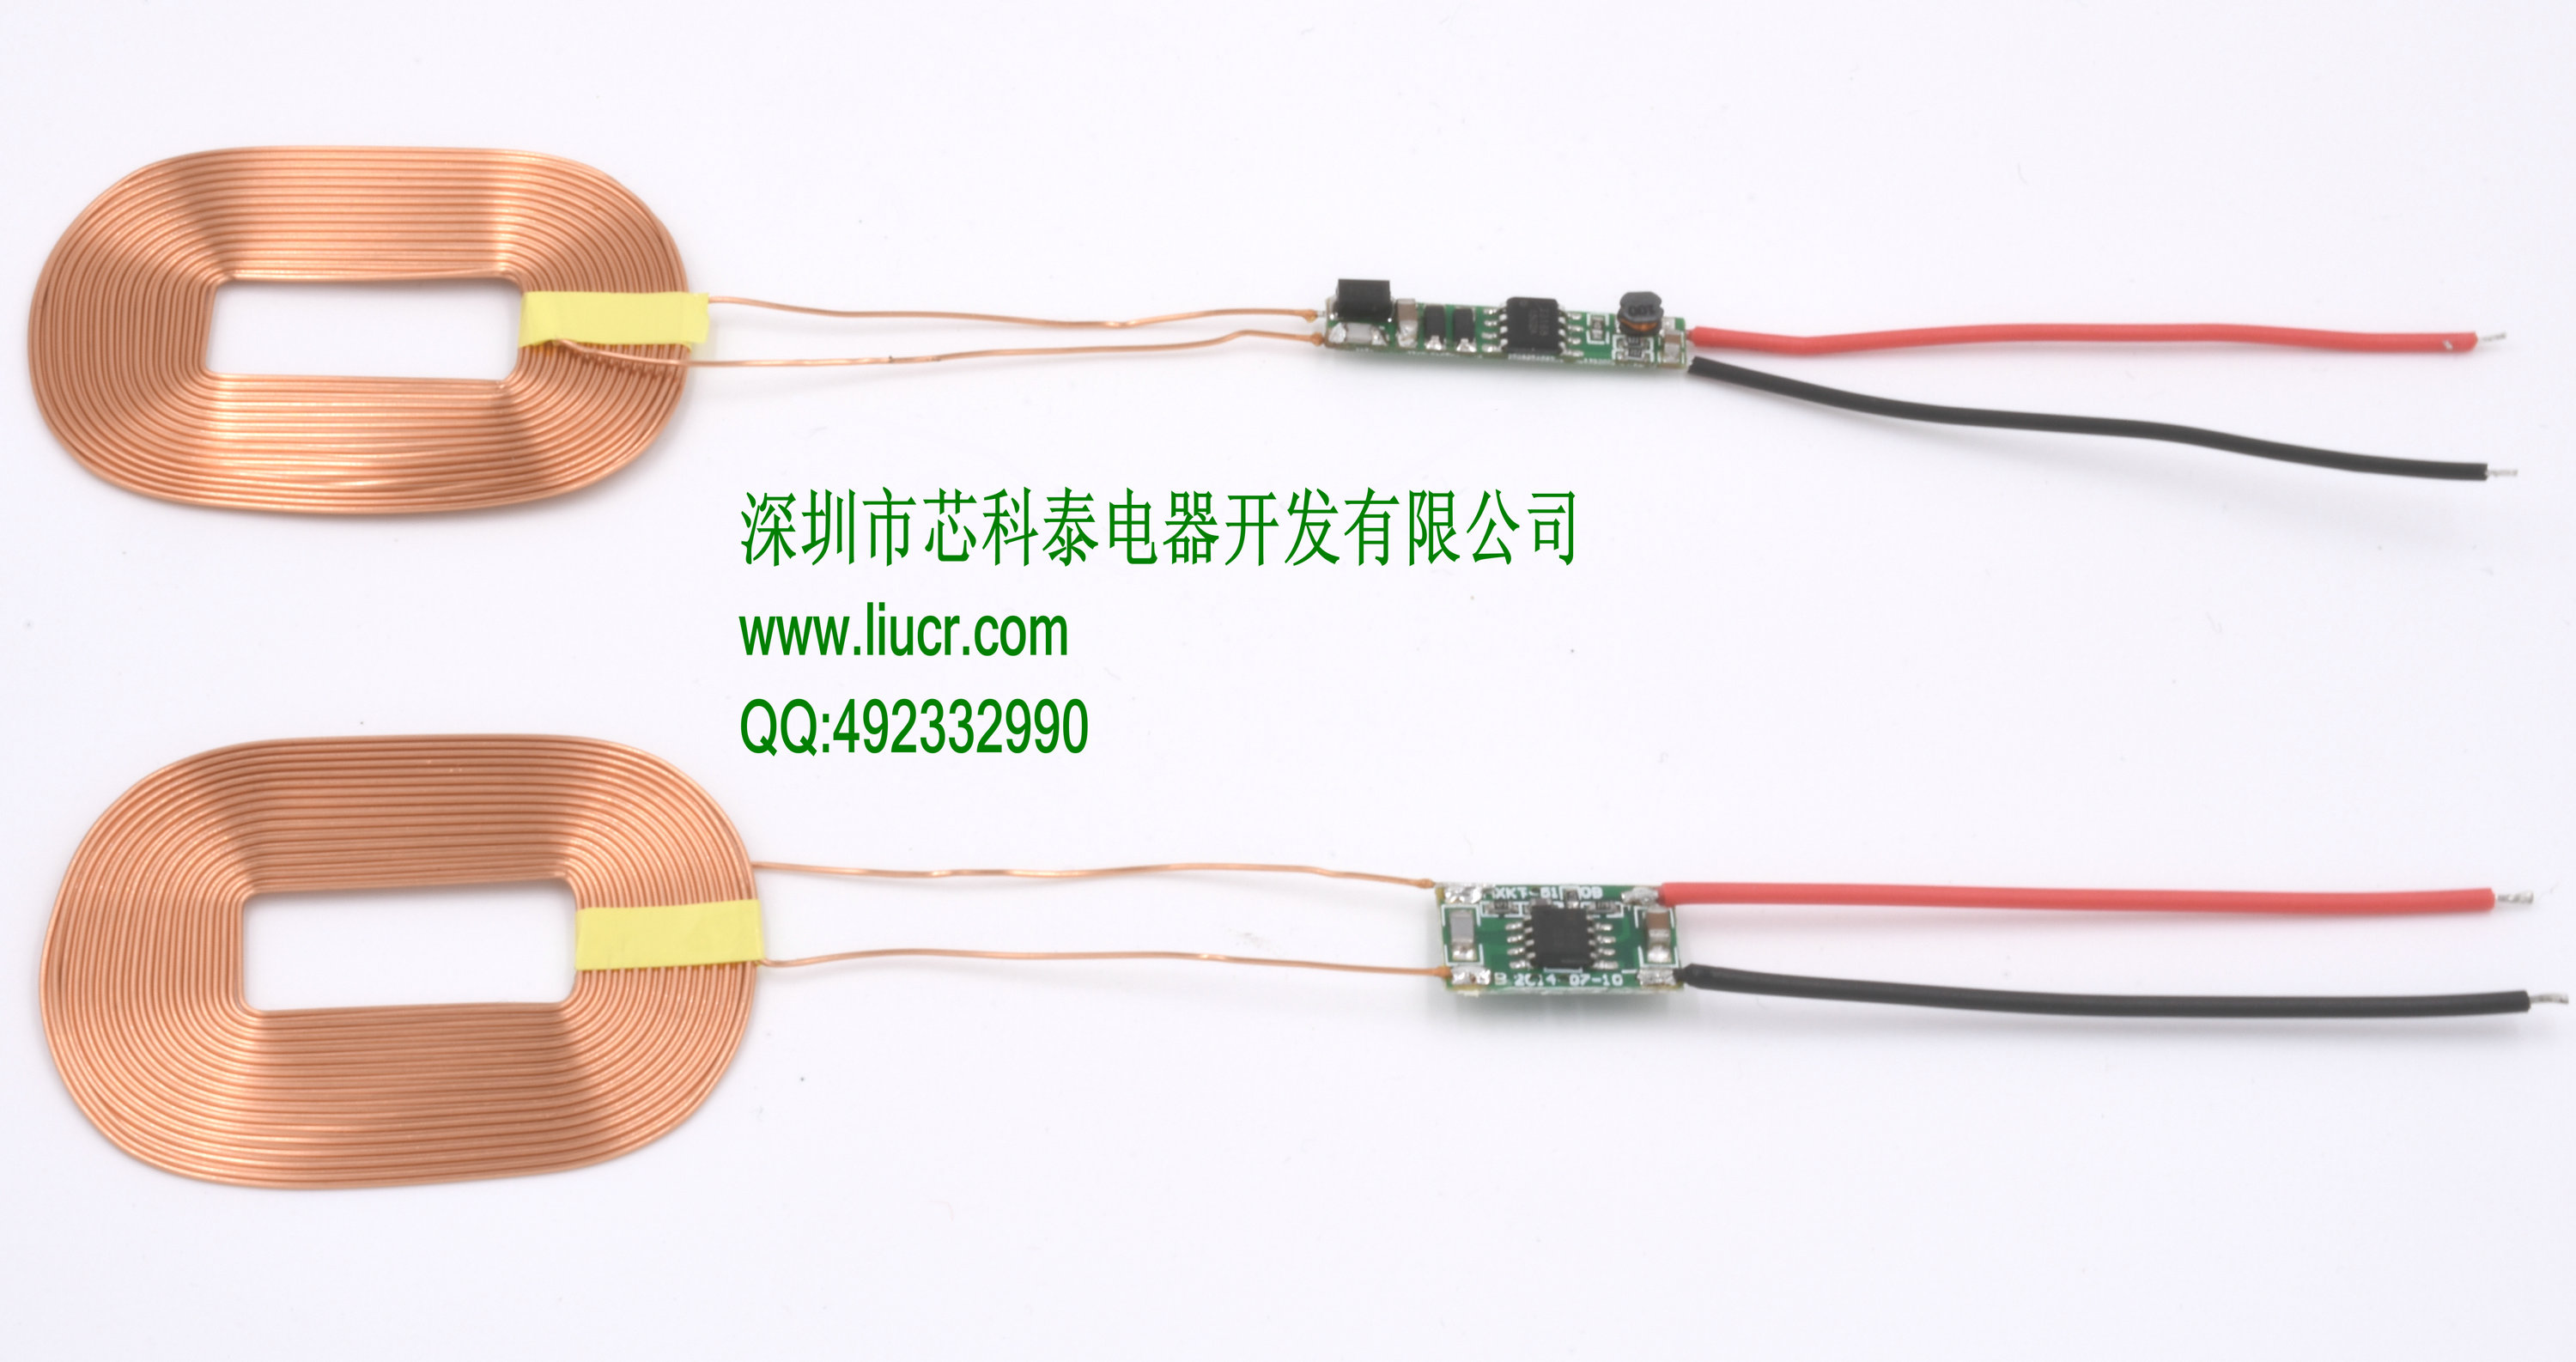 Wireless Power Transmission Circuit Diagram Kenworth T800 Headlight Wiring Square Coil Charging Module Supply Xkt 510 Chip Schematic In Electronics Stocks From Electronic